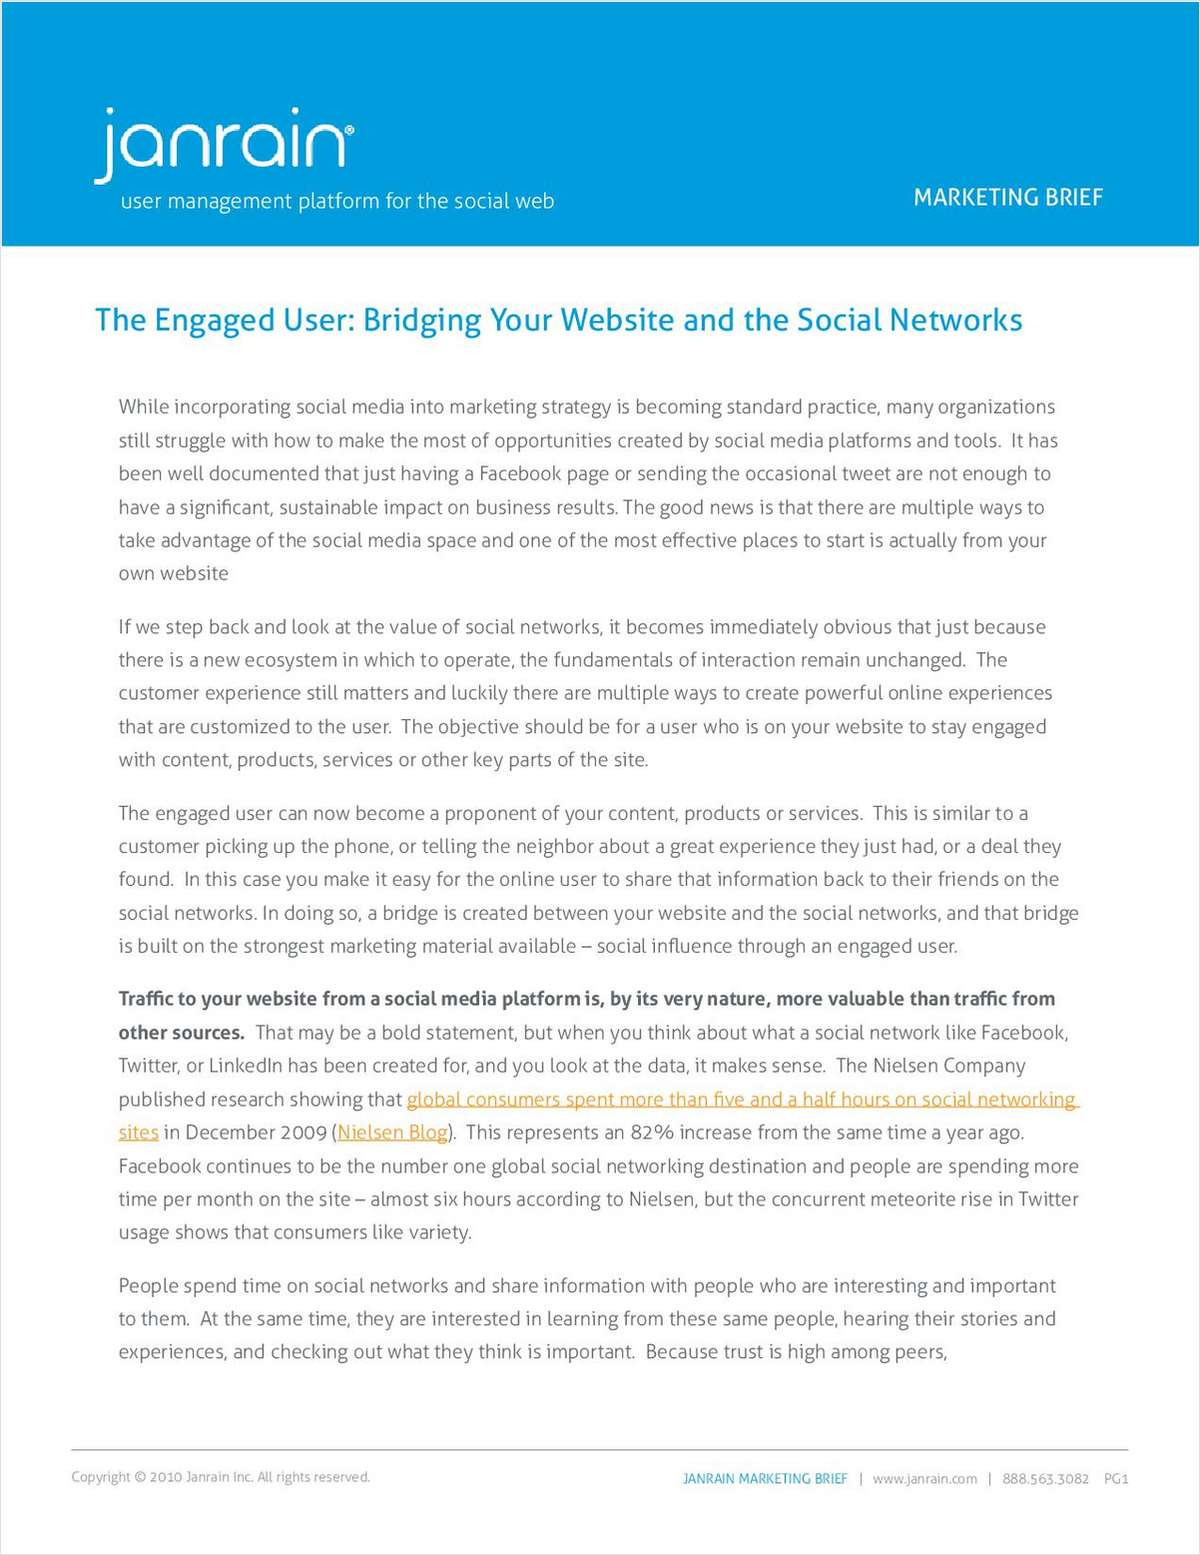 The Engaged User: Bridging Your Website and Social Networks